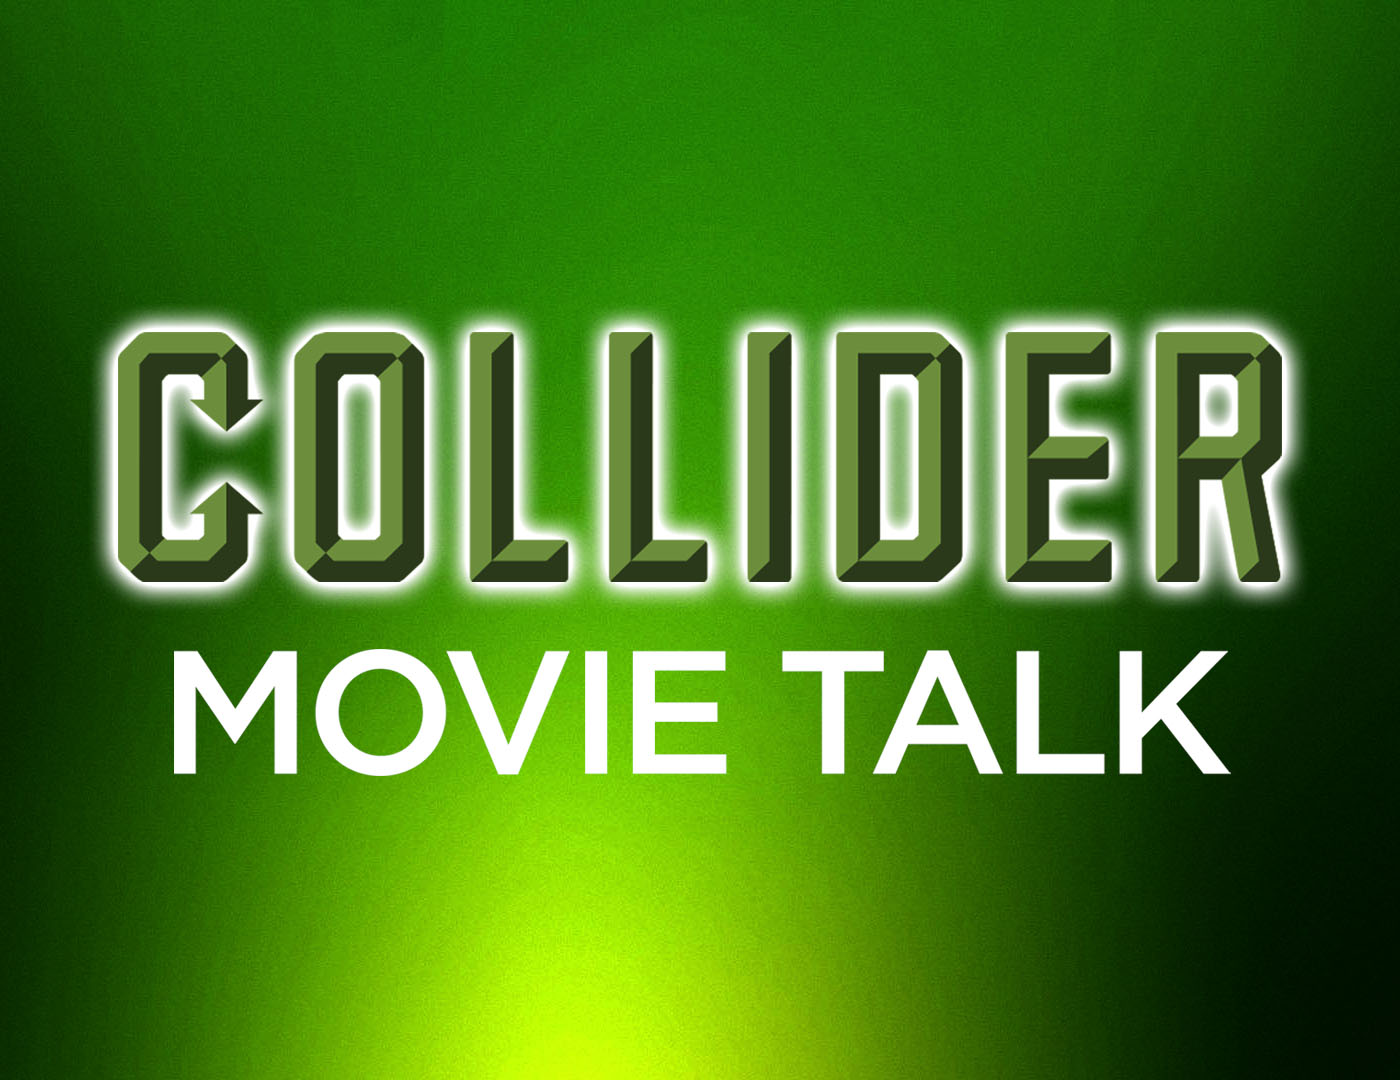 Collider Movie Talk - Justice League Adds Willem Dafoe, Magnificent Seven Teaser Trailer Debuts